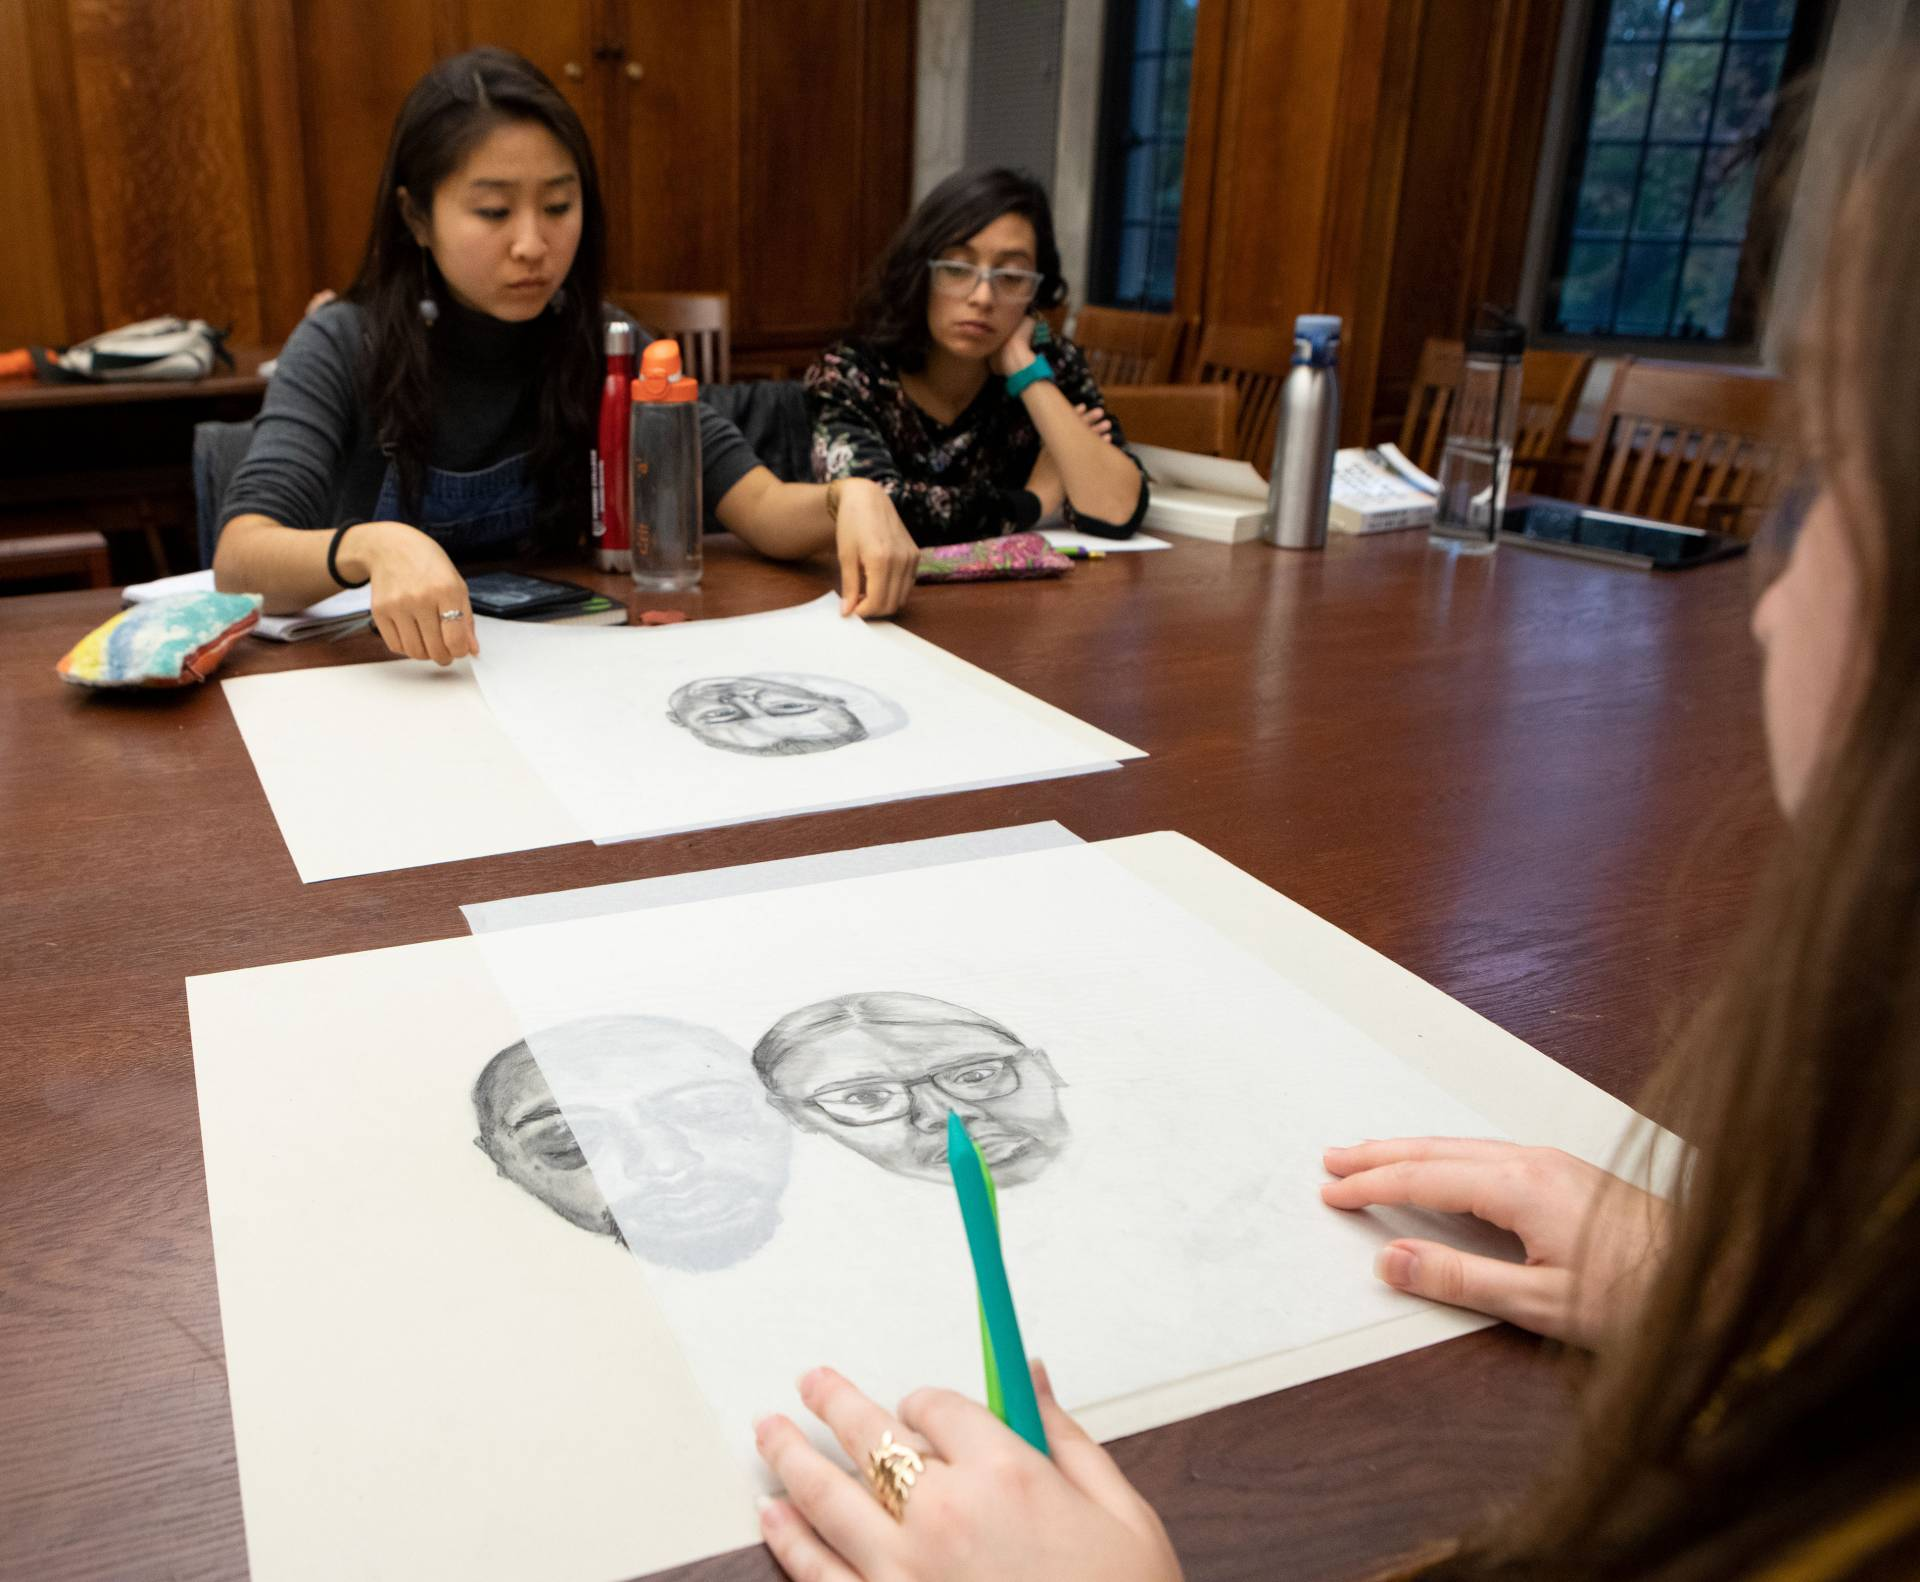 Students look at drawings of faces